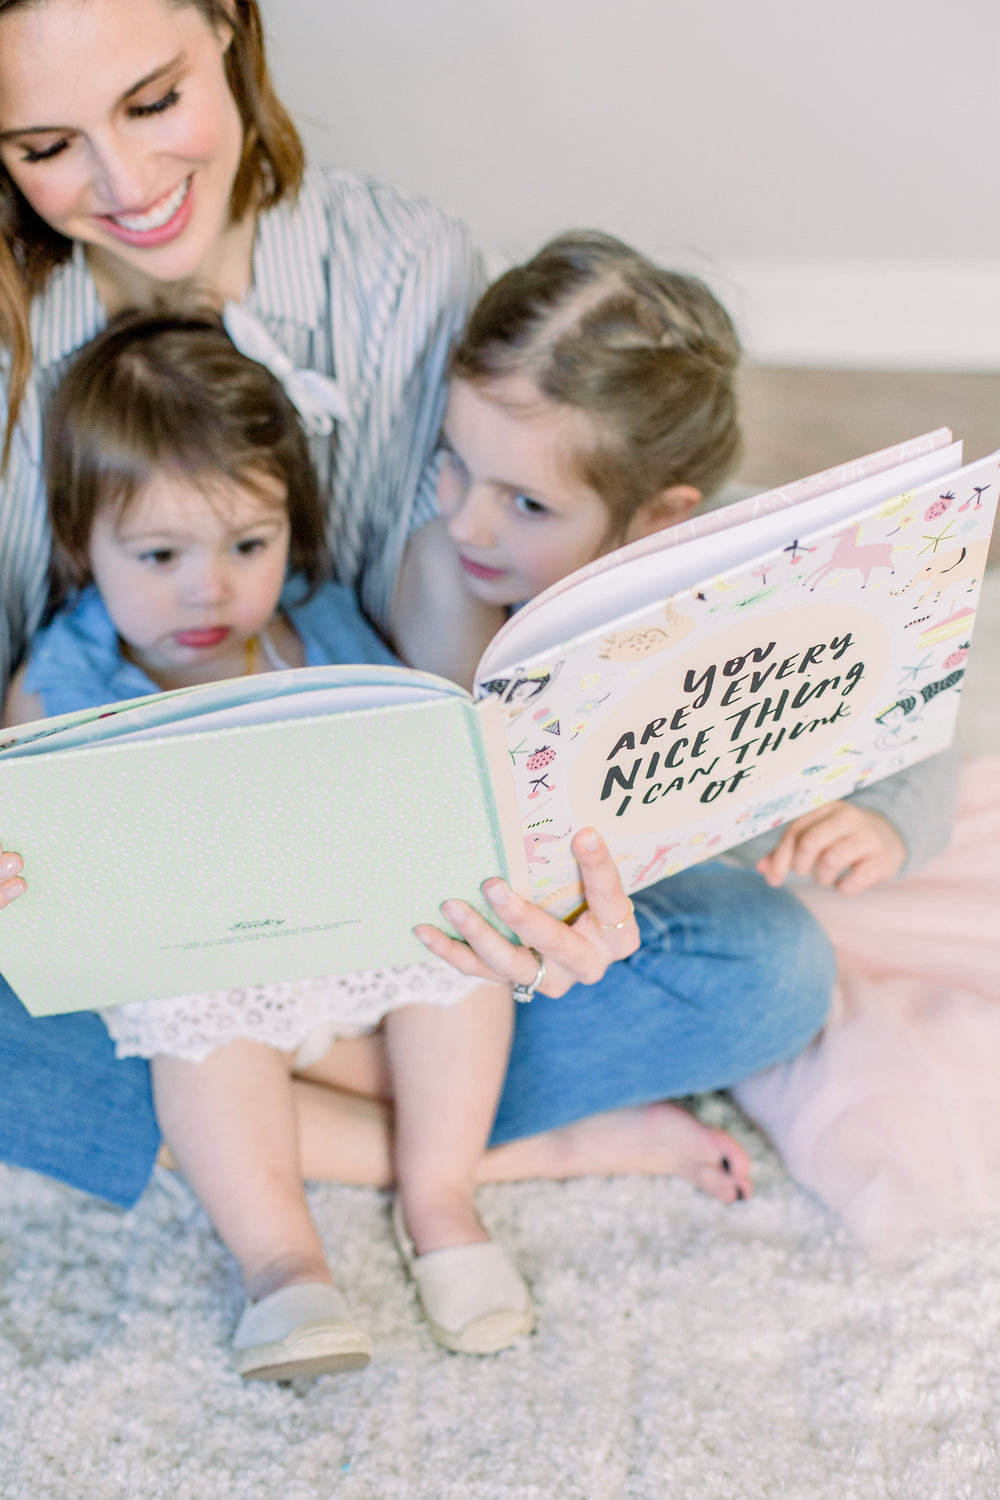 Riley & Evie's Personalized Kid's Book  - by MIXBOOK